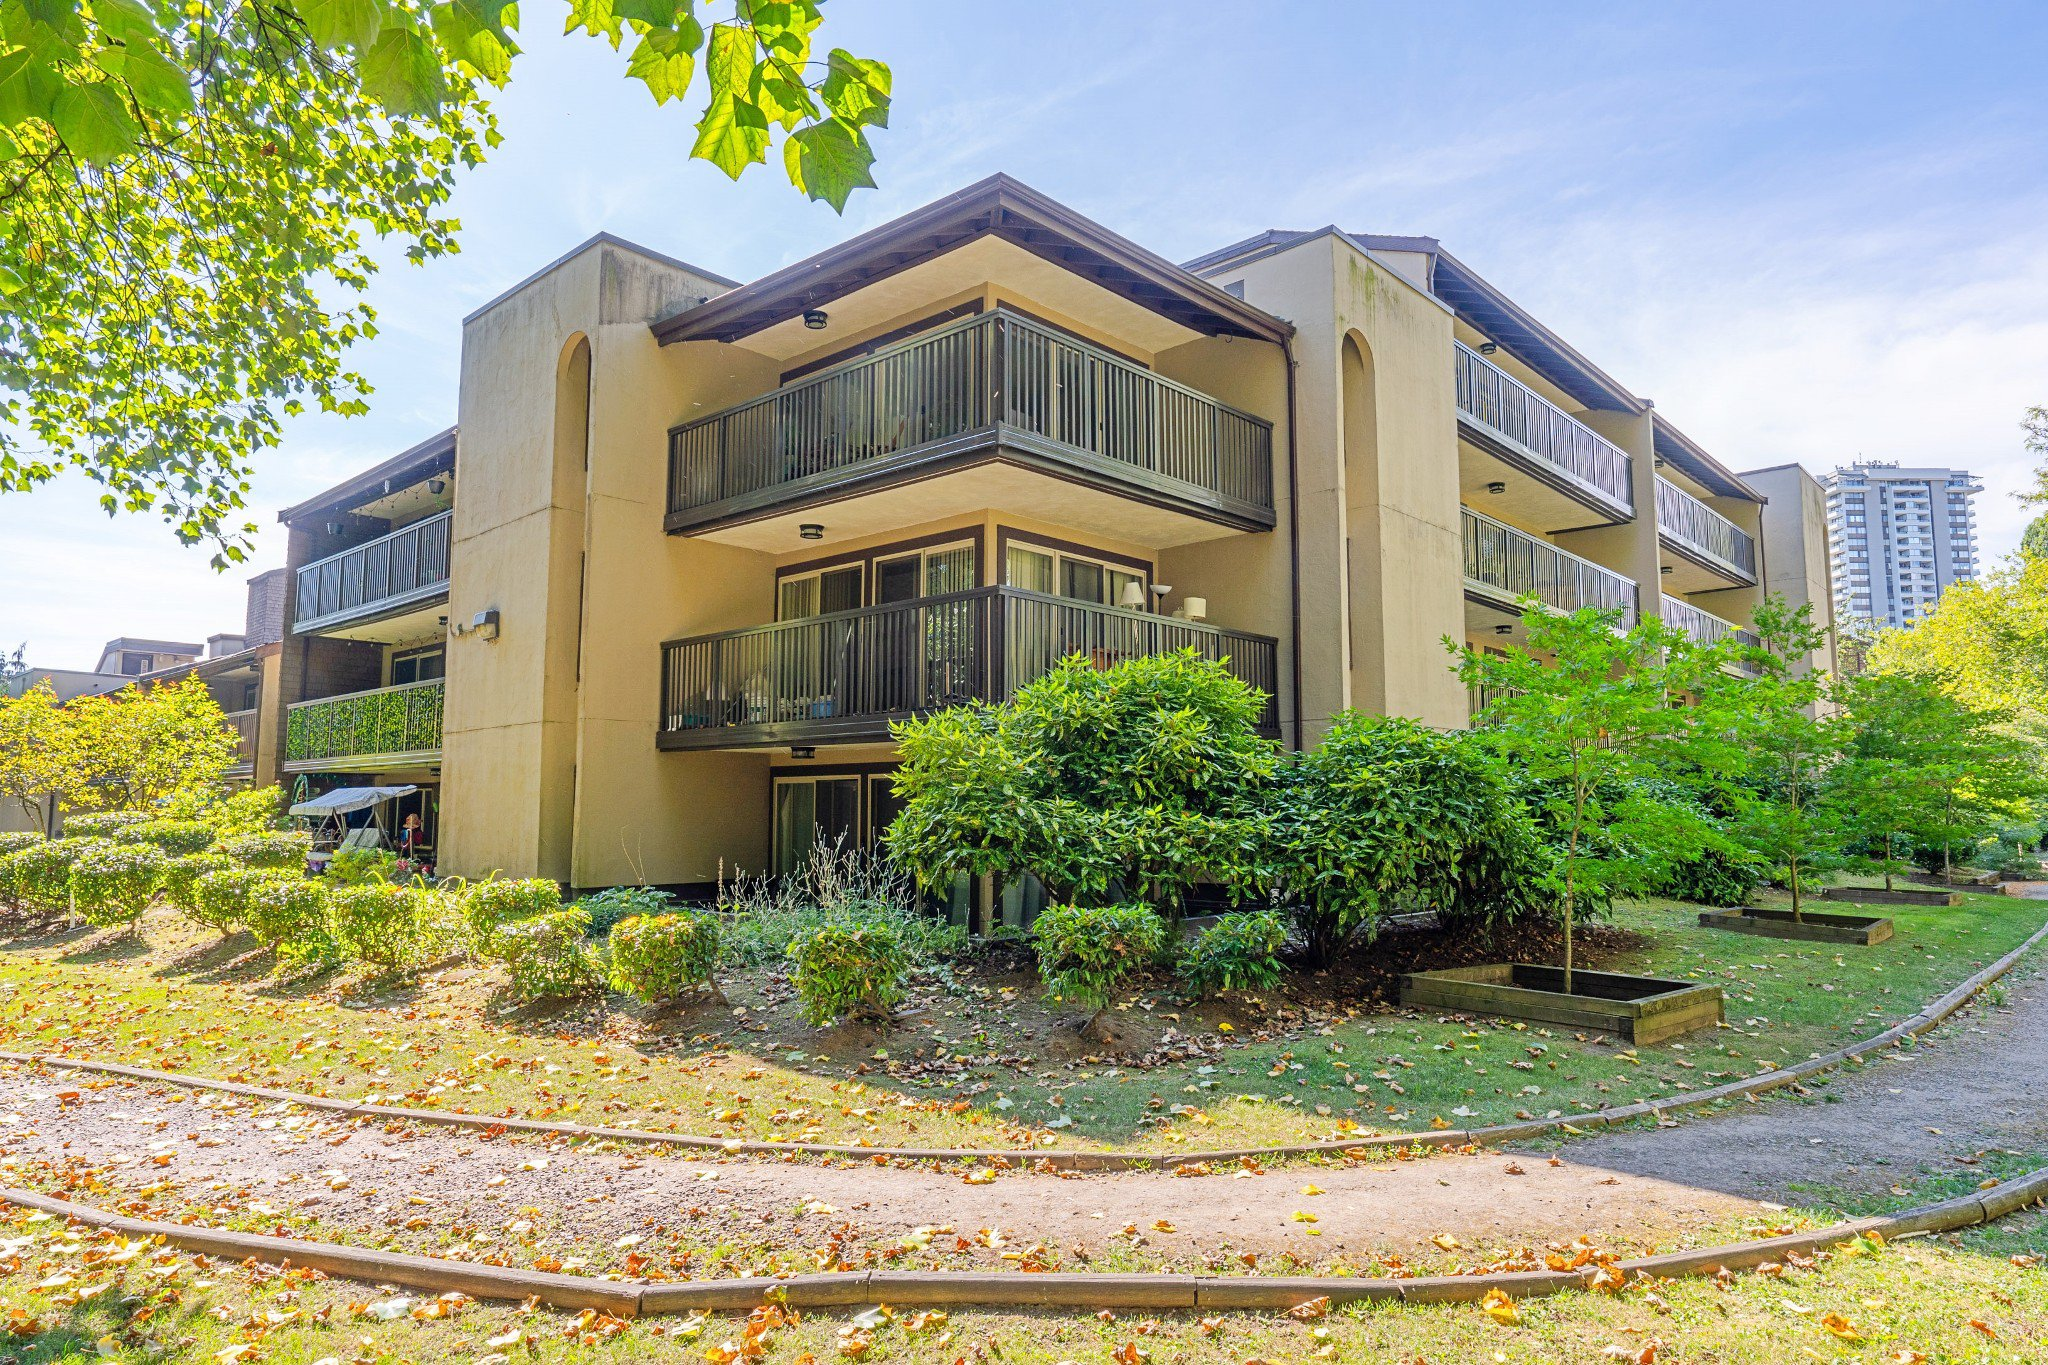 """Main Photo: 609 9867 MANCHESTER Drive in Burnaby: Cariboo Condo for sale in """"Barclay Woods"""" (Burnaby North)  : MLS®# R2488451"""